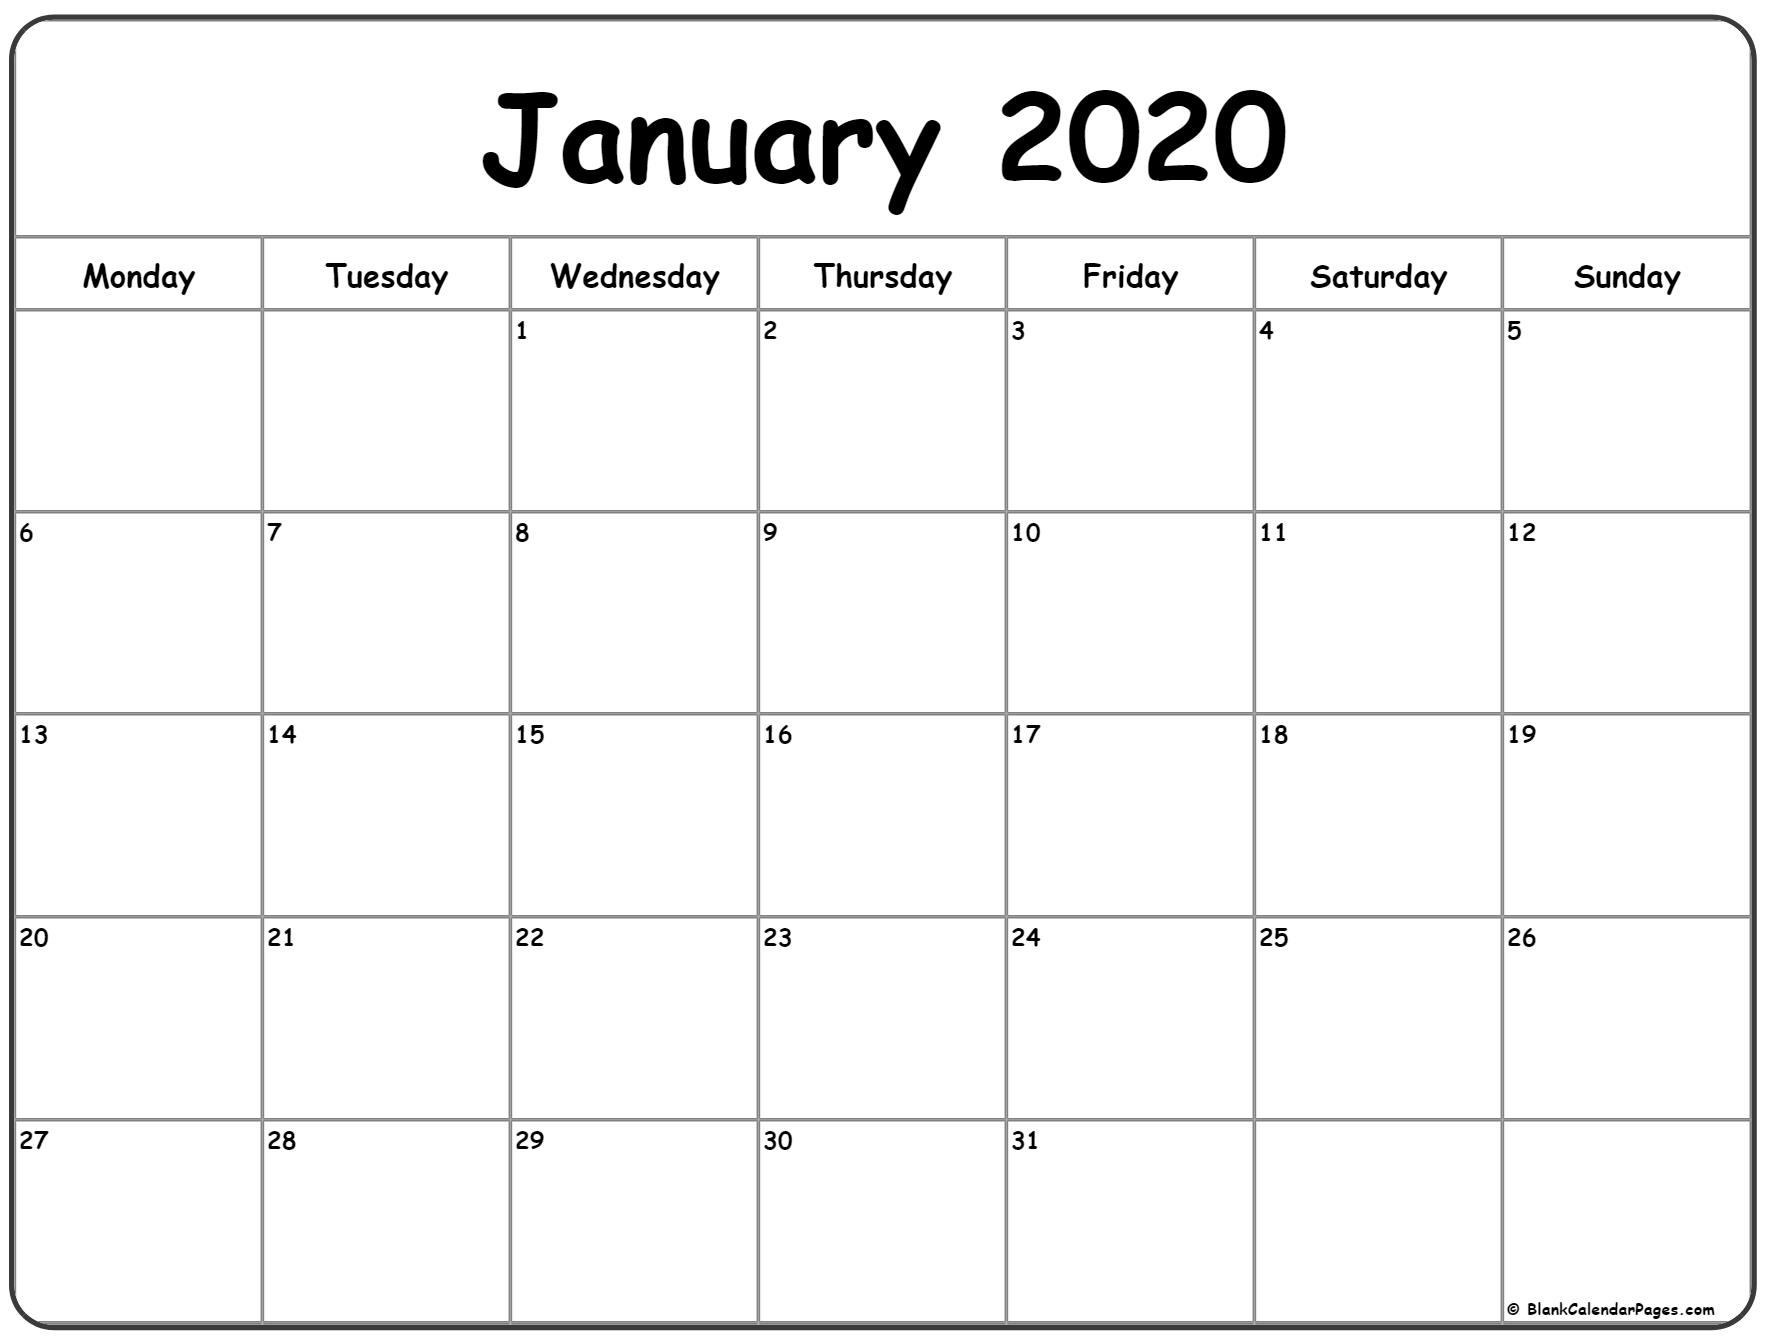 January 2020 Monday Calendar | Monday To Sunday for January 2020 Calendar Blank